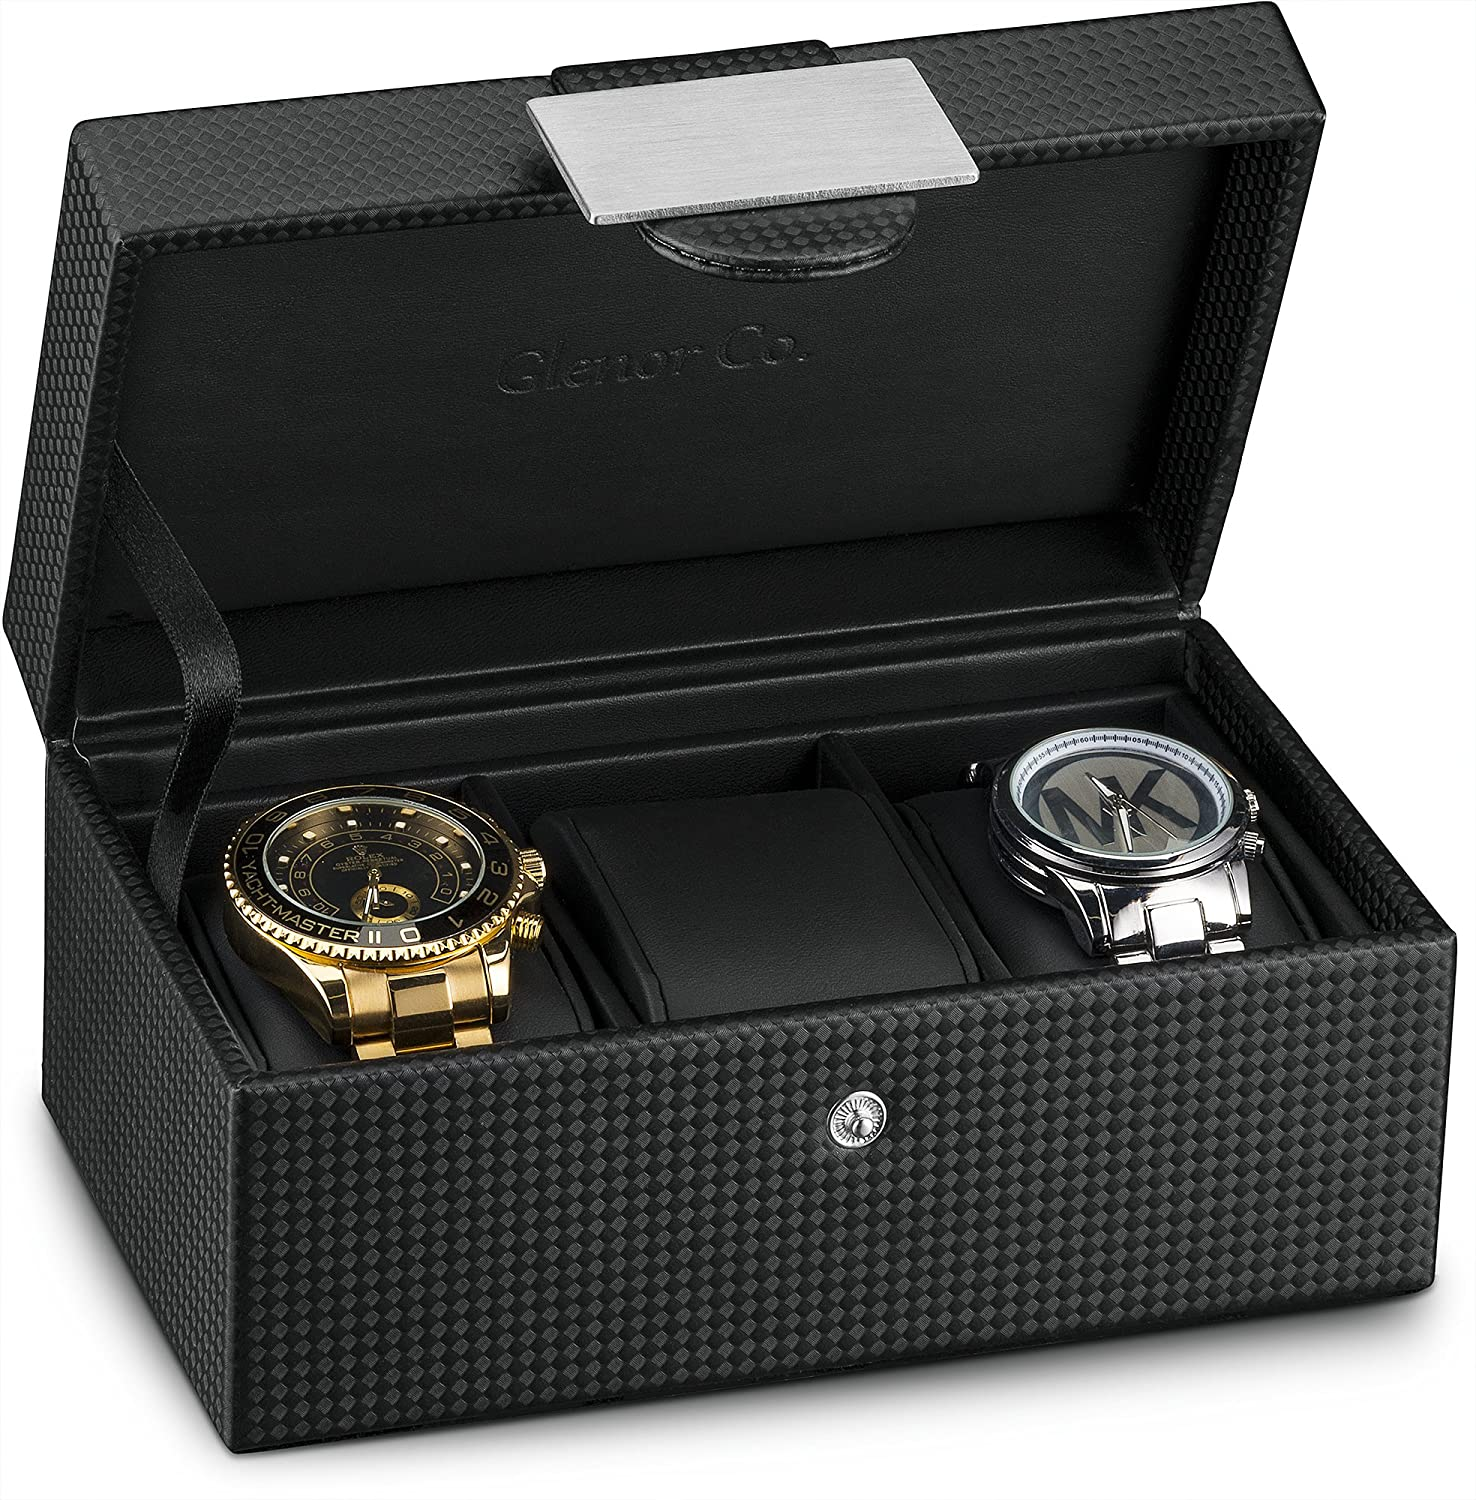 Glenor Co Travel Watch Case – 3 Slot Luxury Organizer Box, Carbon Fiber Design for Mens Jewelry Watches, Men s Storage Holder Boasts Metal Buckle Leather Pillows, Small for Traveling – Black